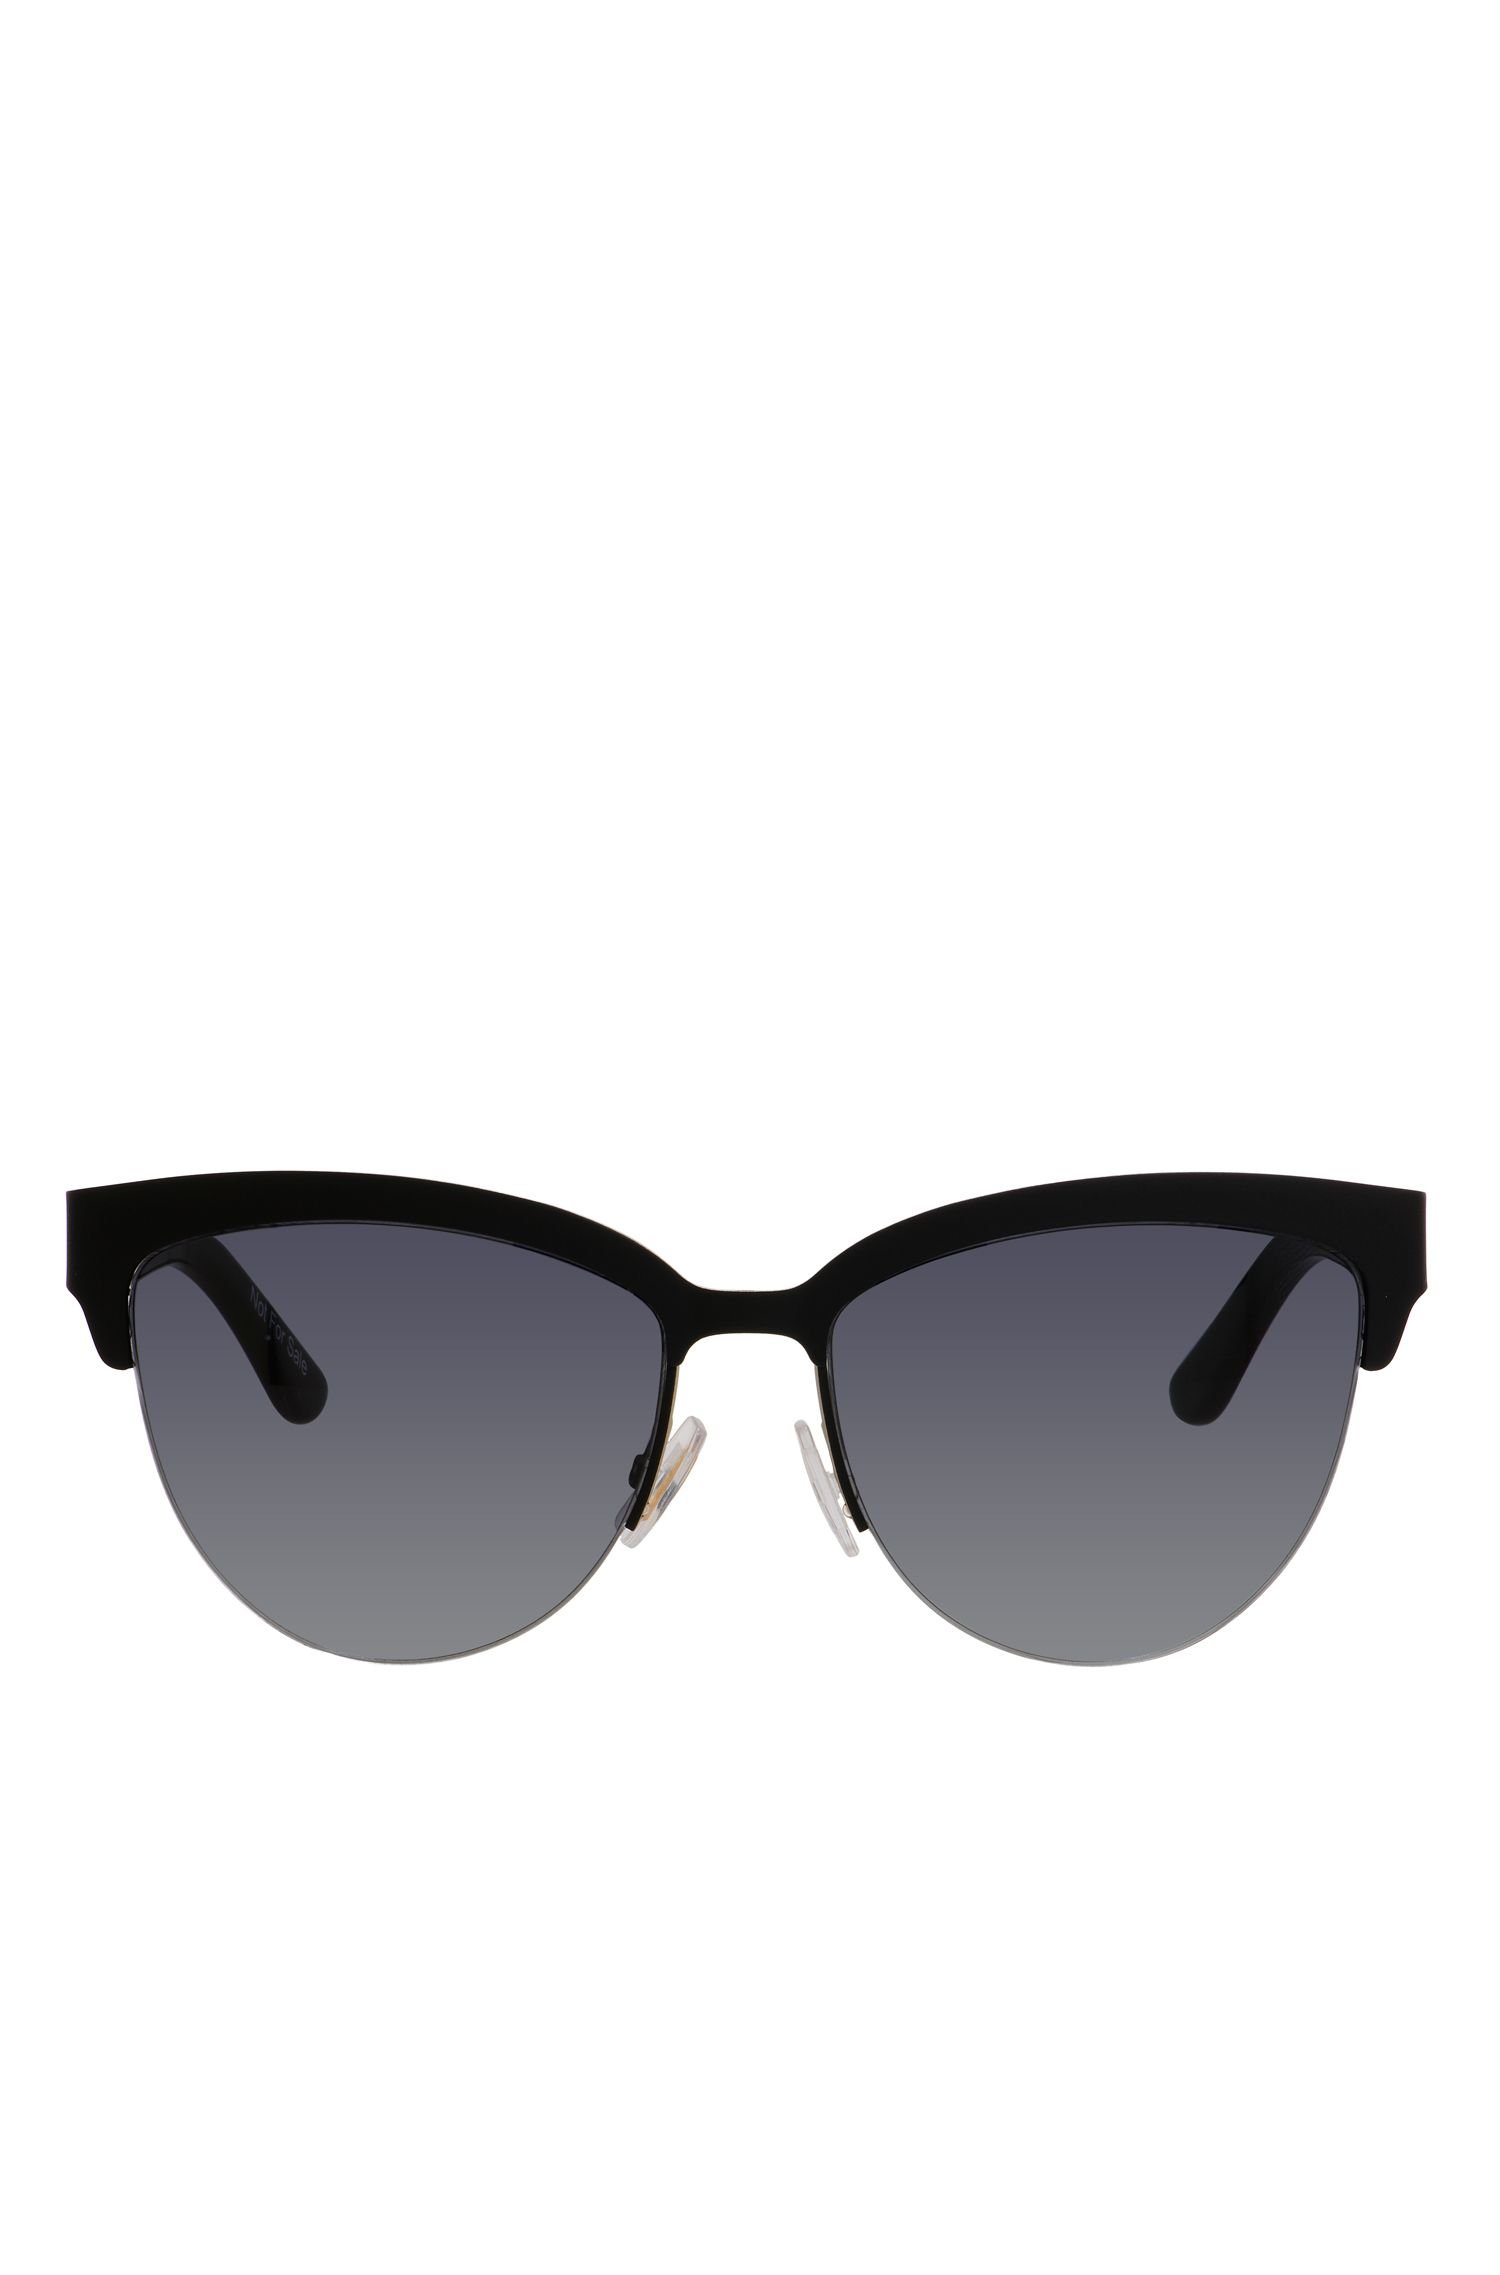 Black Lenses Half-Frame Cateye Sunglasses | BOSS 678S, Assorted-Pre-Pack